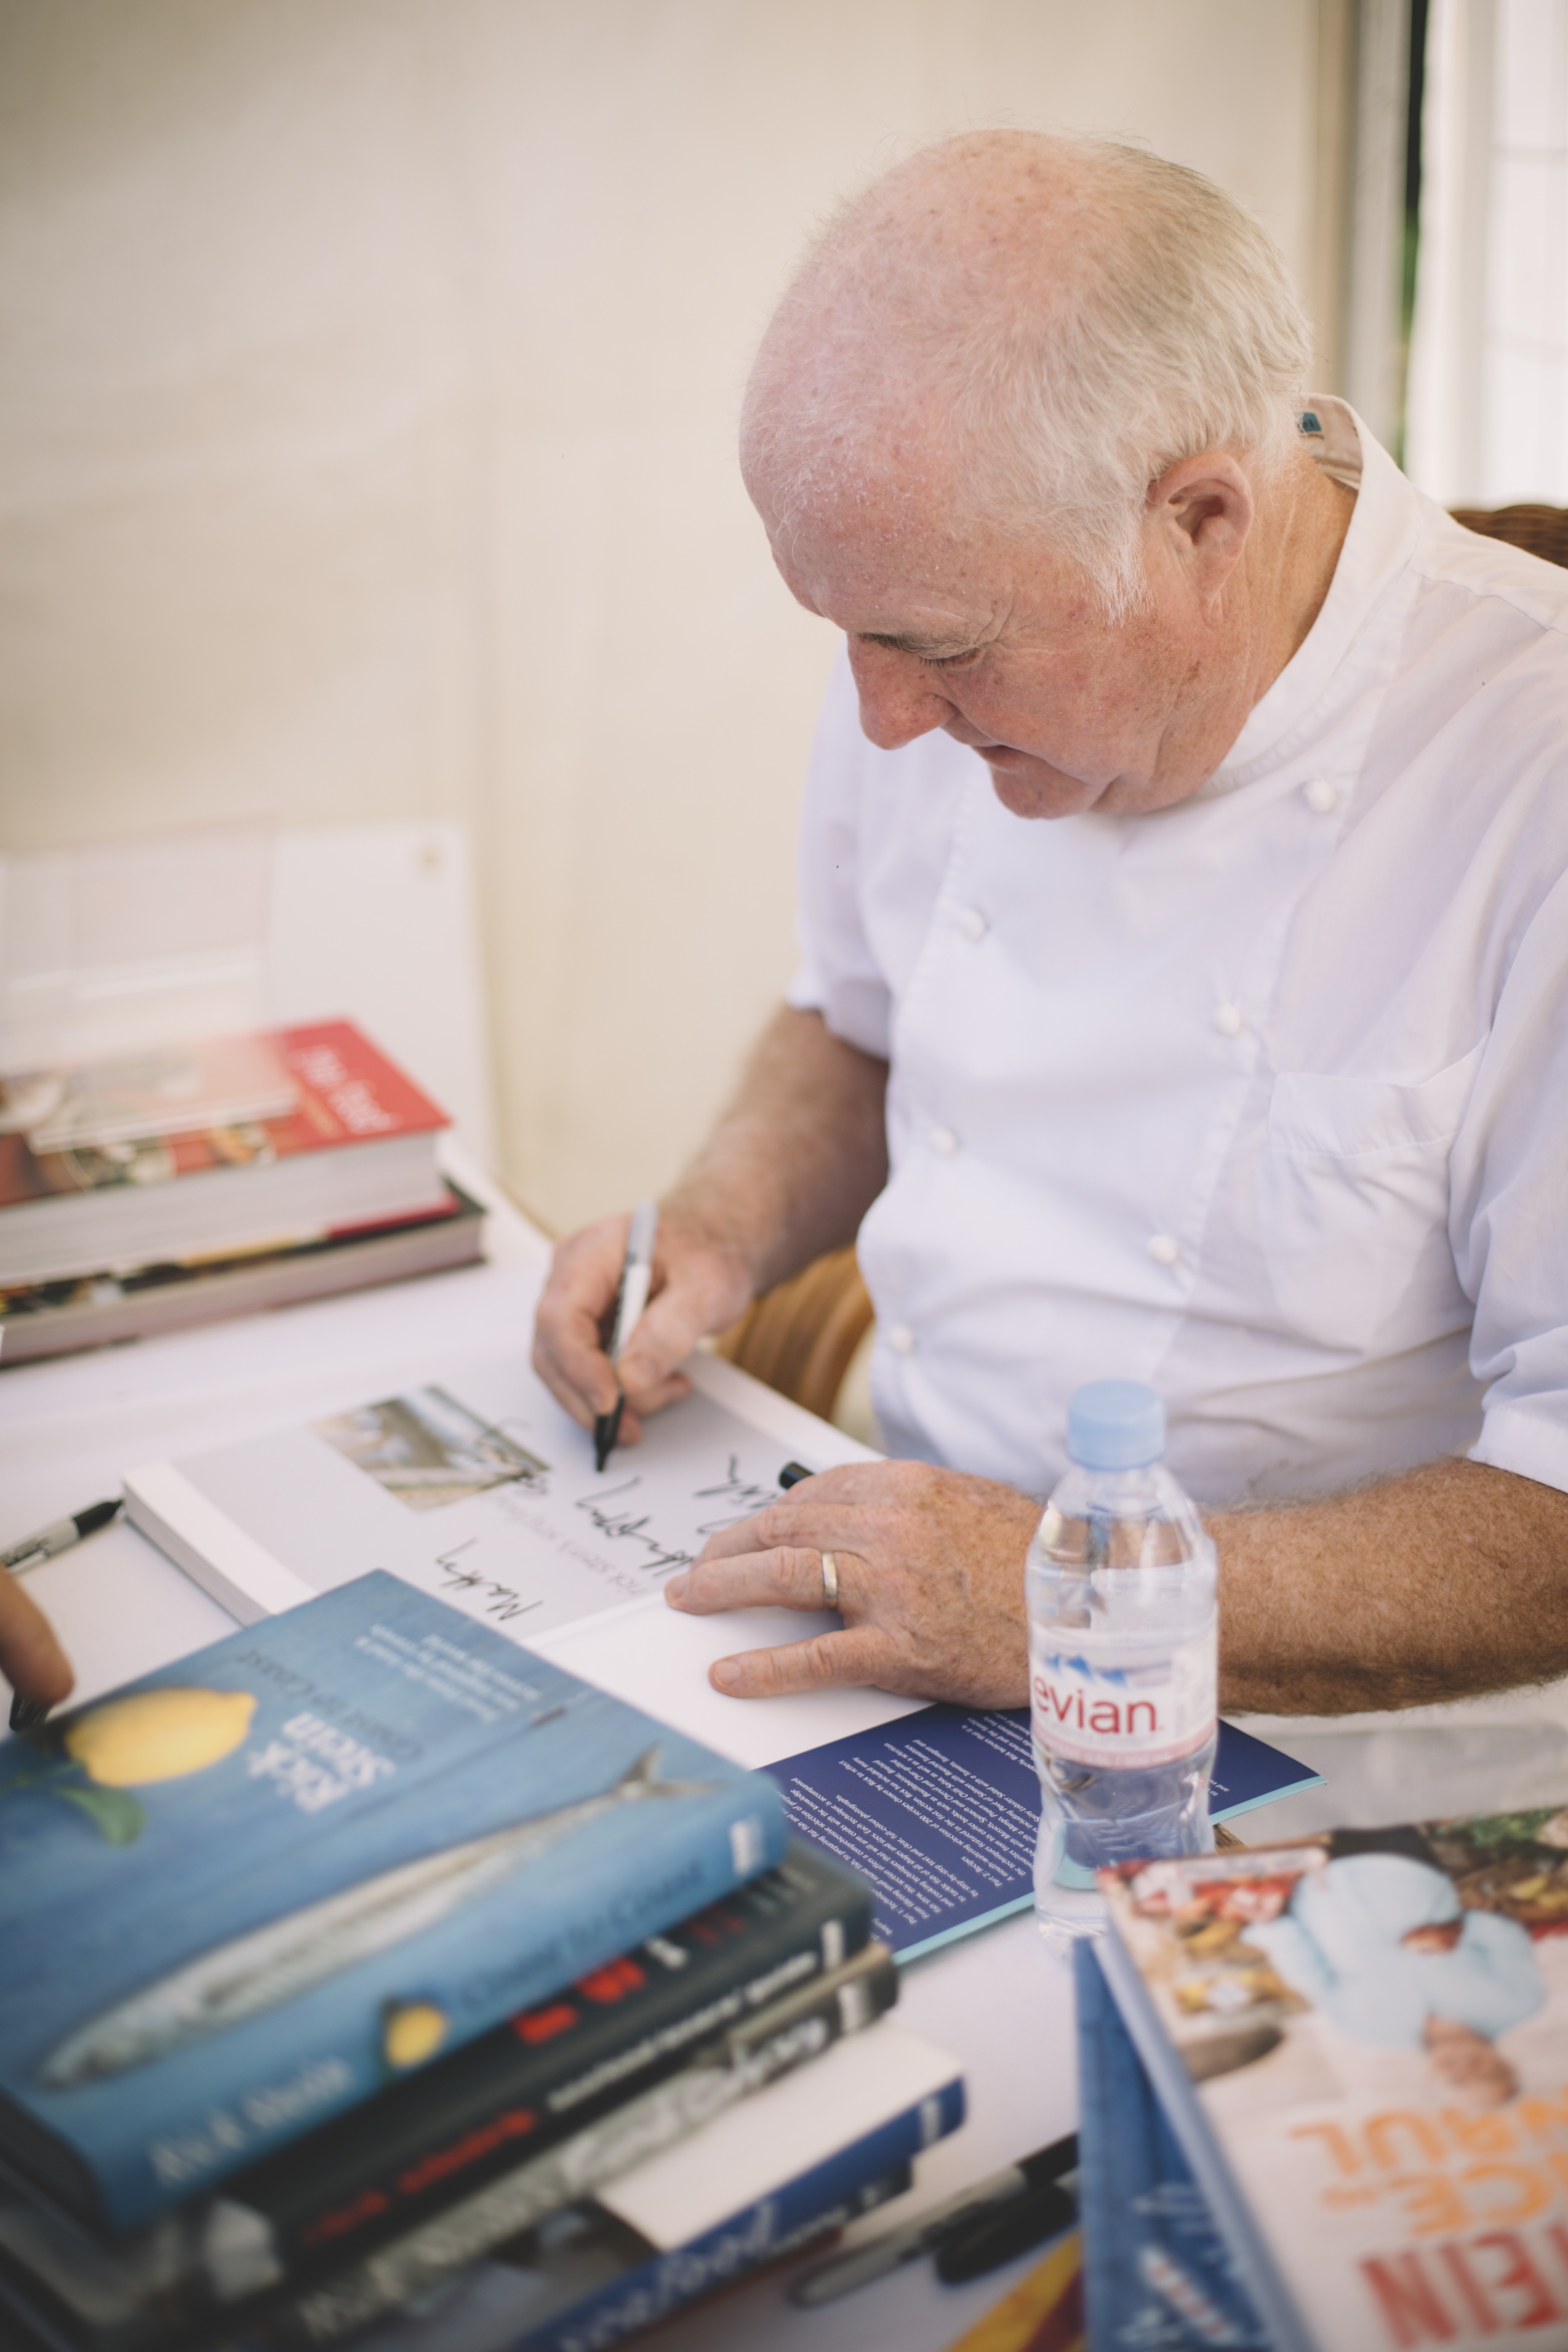 the-margaret-river-escape, gourmet-village-rick-stein-book-signing-2015